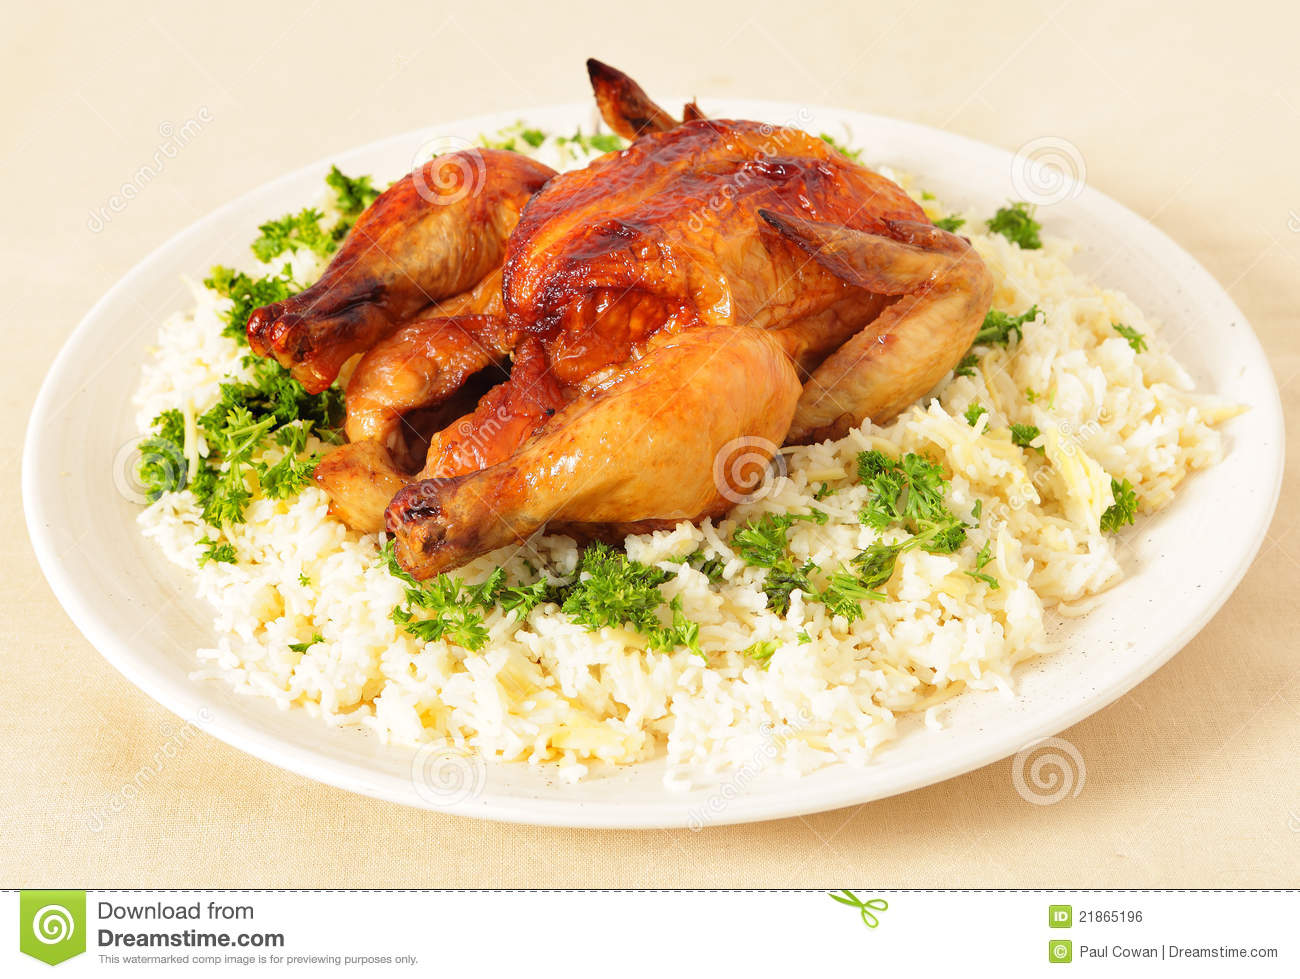 Chicken And Rice Dinner Clip Art Images & Pictures - Becuo